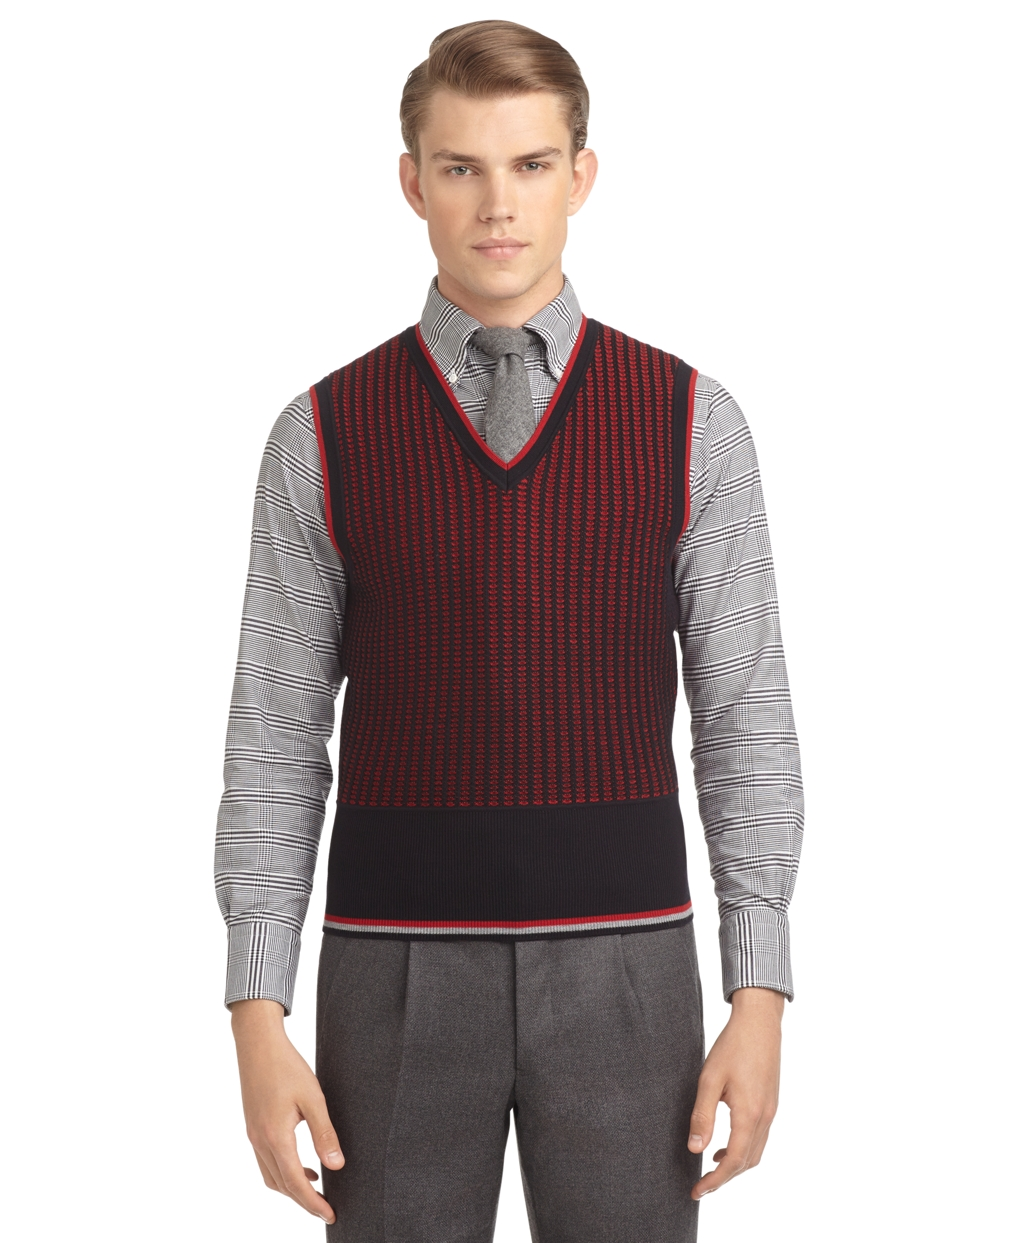 Mens Sweater Vest. Find the comfort you love in a sweater with the style of a button down when you wear a men's sweater vest. A classic fashion pair, a sweater vest and button-down shirt is a great choice for a party, office meeting, or relaxing Sunday afternoon. Bring .